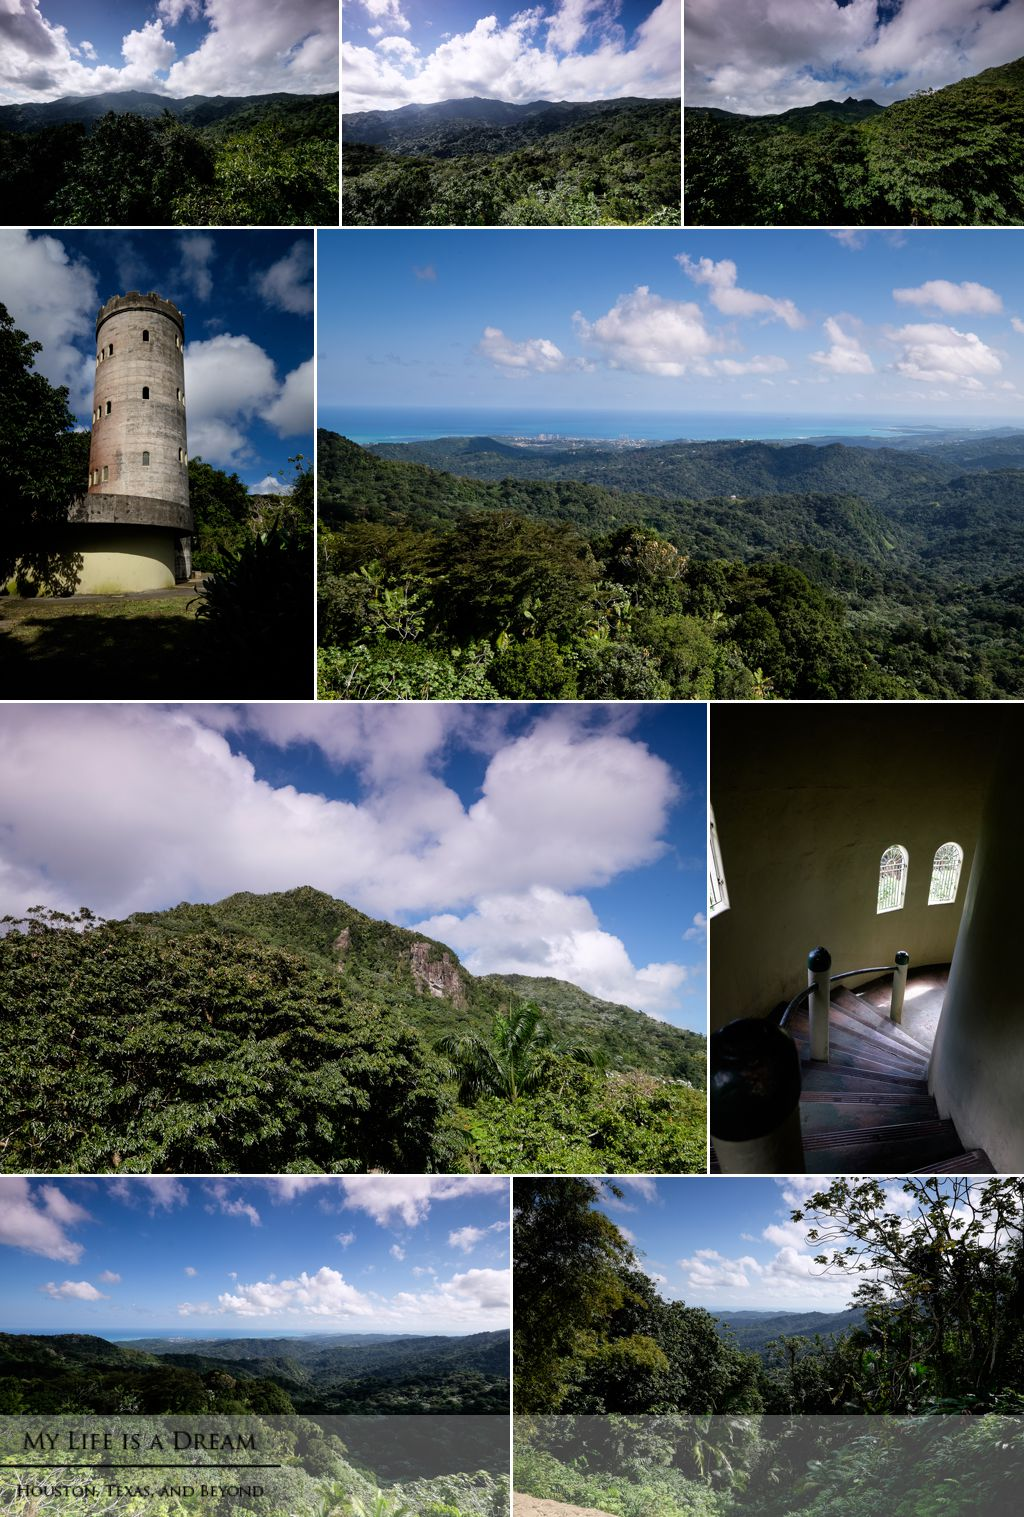 Yokahu Tower, El Yunque National Forest, Puerto Rico